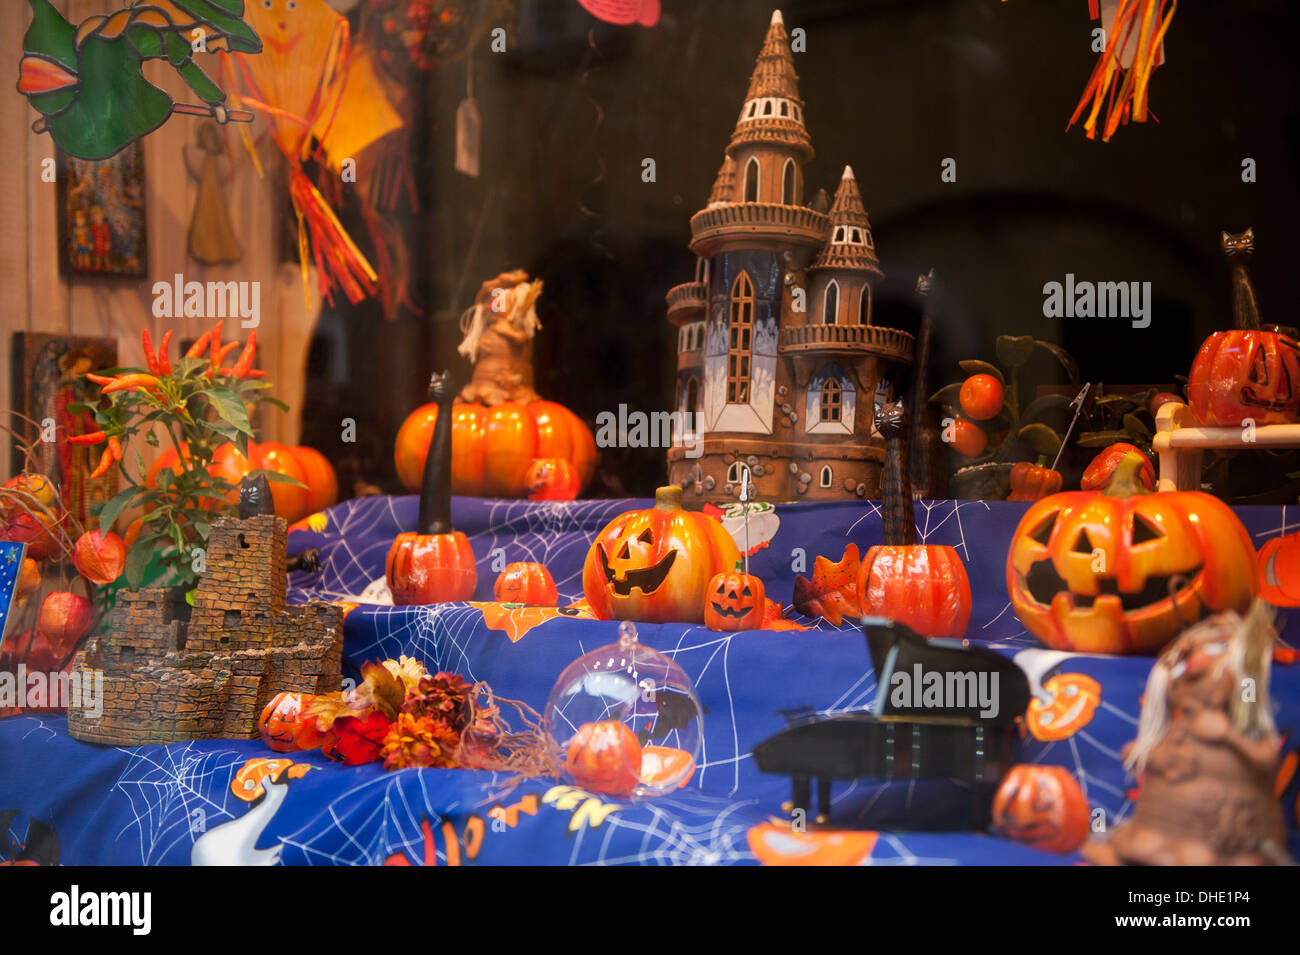 pumpkins and castle in shop window exposure - Stock Image